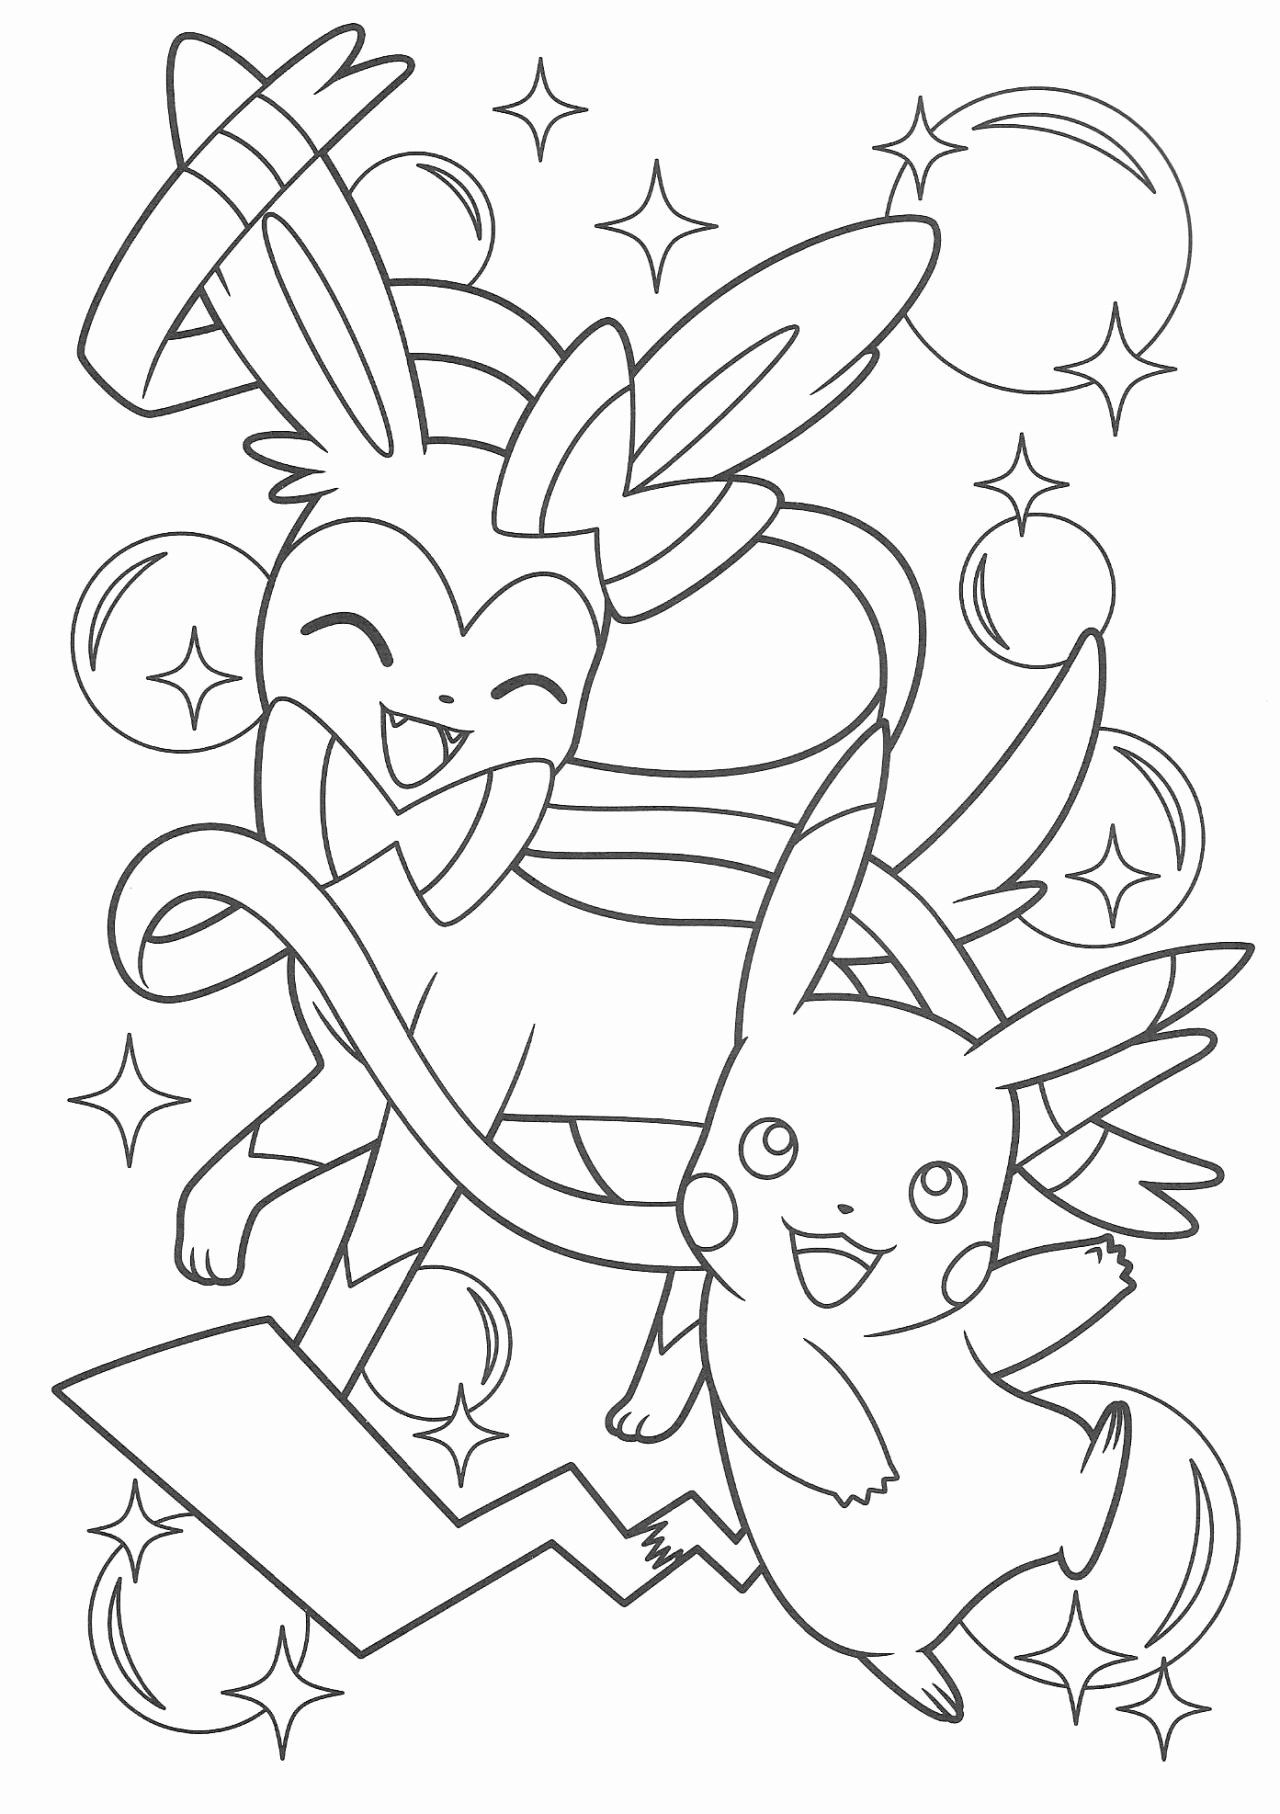 pokemon coloring pages for kids printable 24 pokemon adult coloring book in 2020 pokemon coloring kids pokemon for printable coloring pages